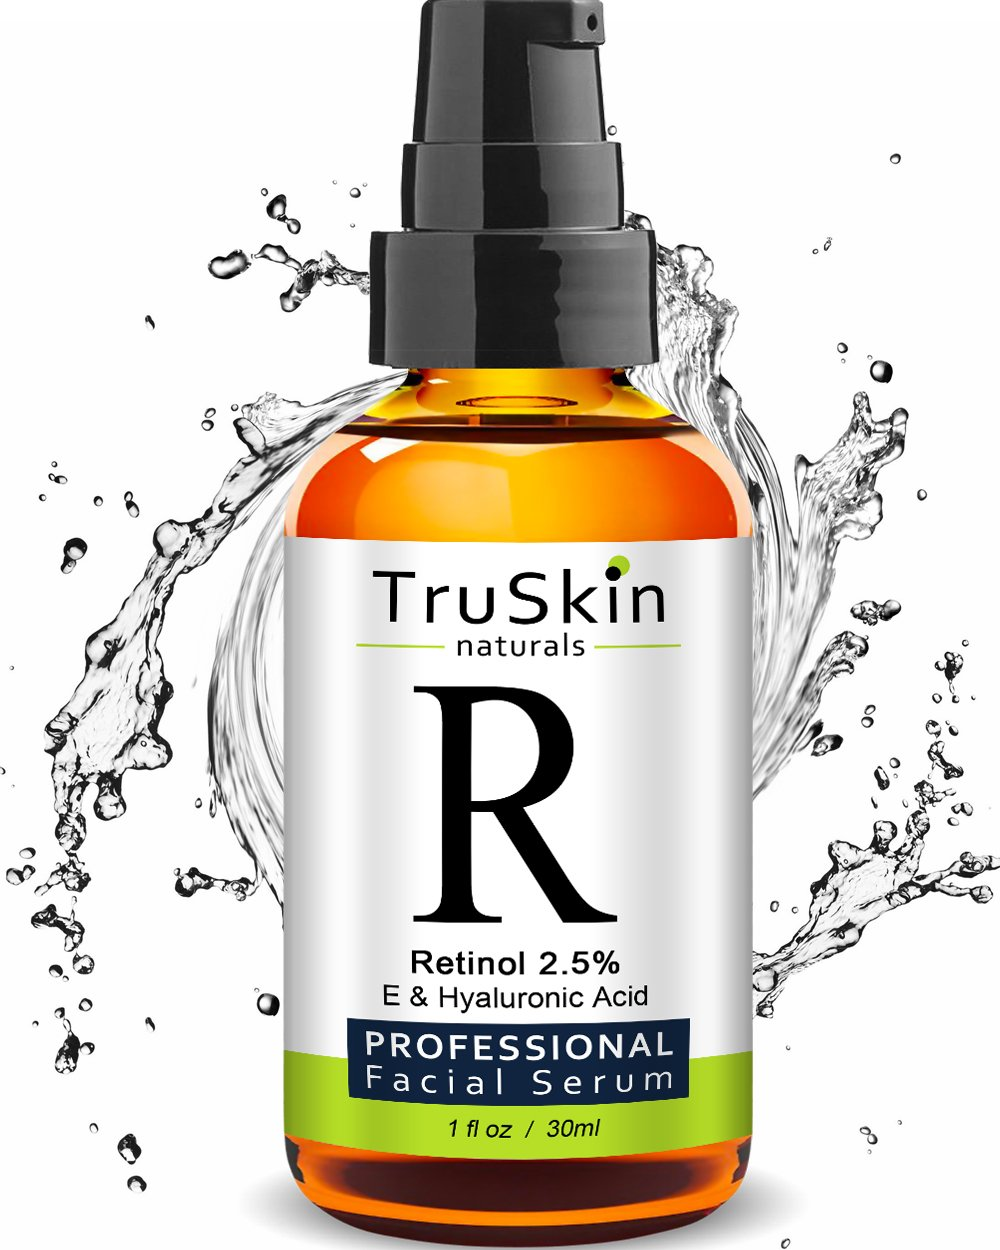 TruSkin RETINOL Serum for Wrinkles, Fine Lines, contains Vitamin A, E and Hyaluronic Acid, Organic Green Tea, Jojoba Oil, BEST Anti Wrinkle Facial Serum. 1oz